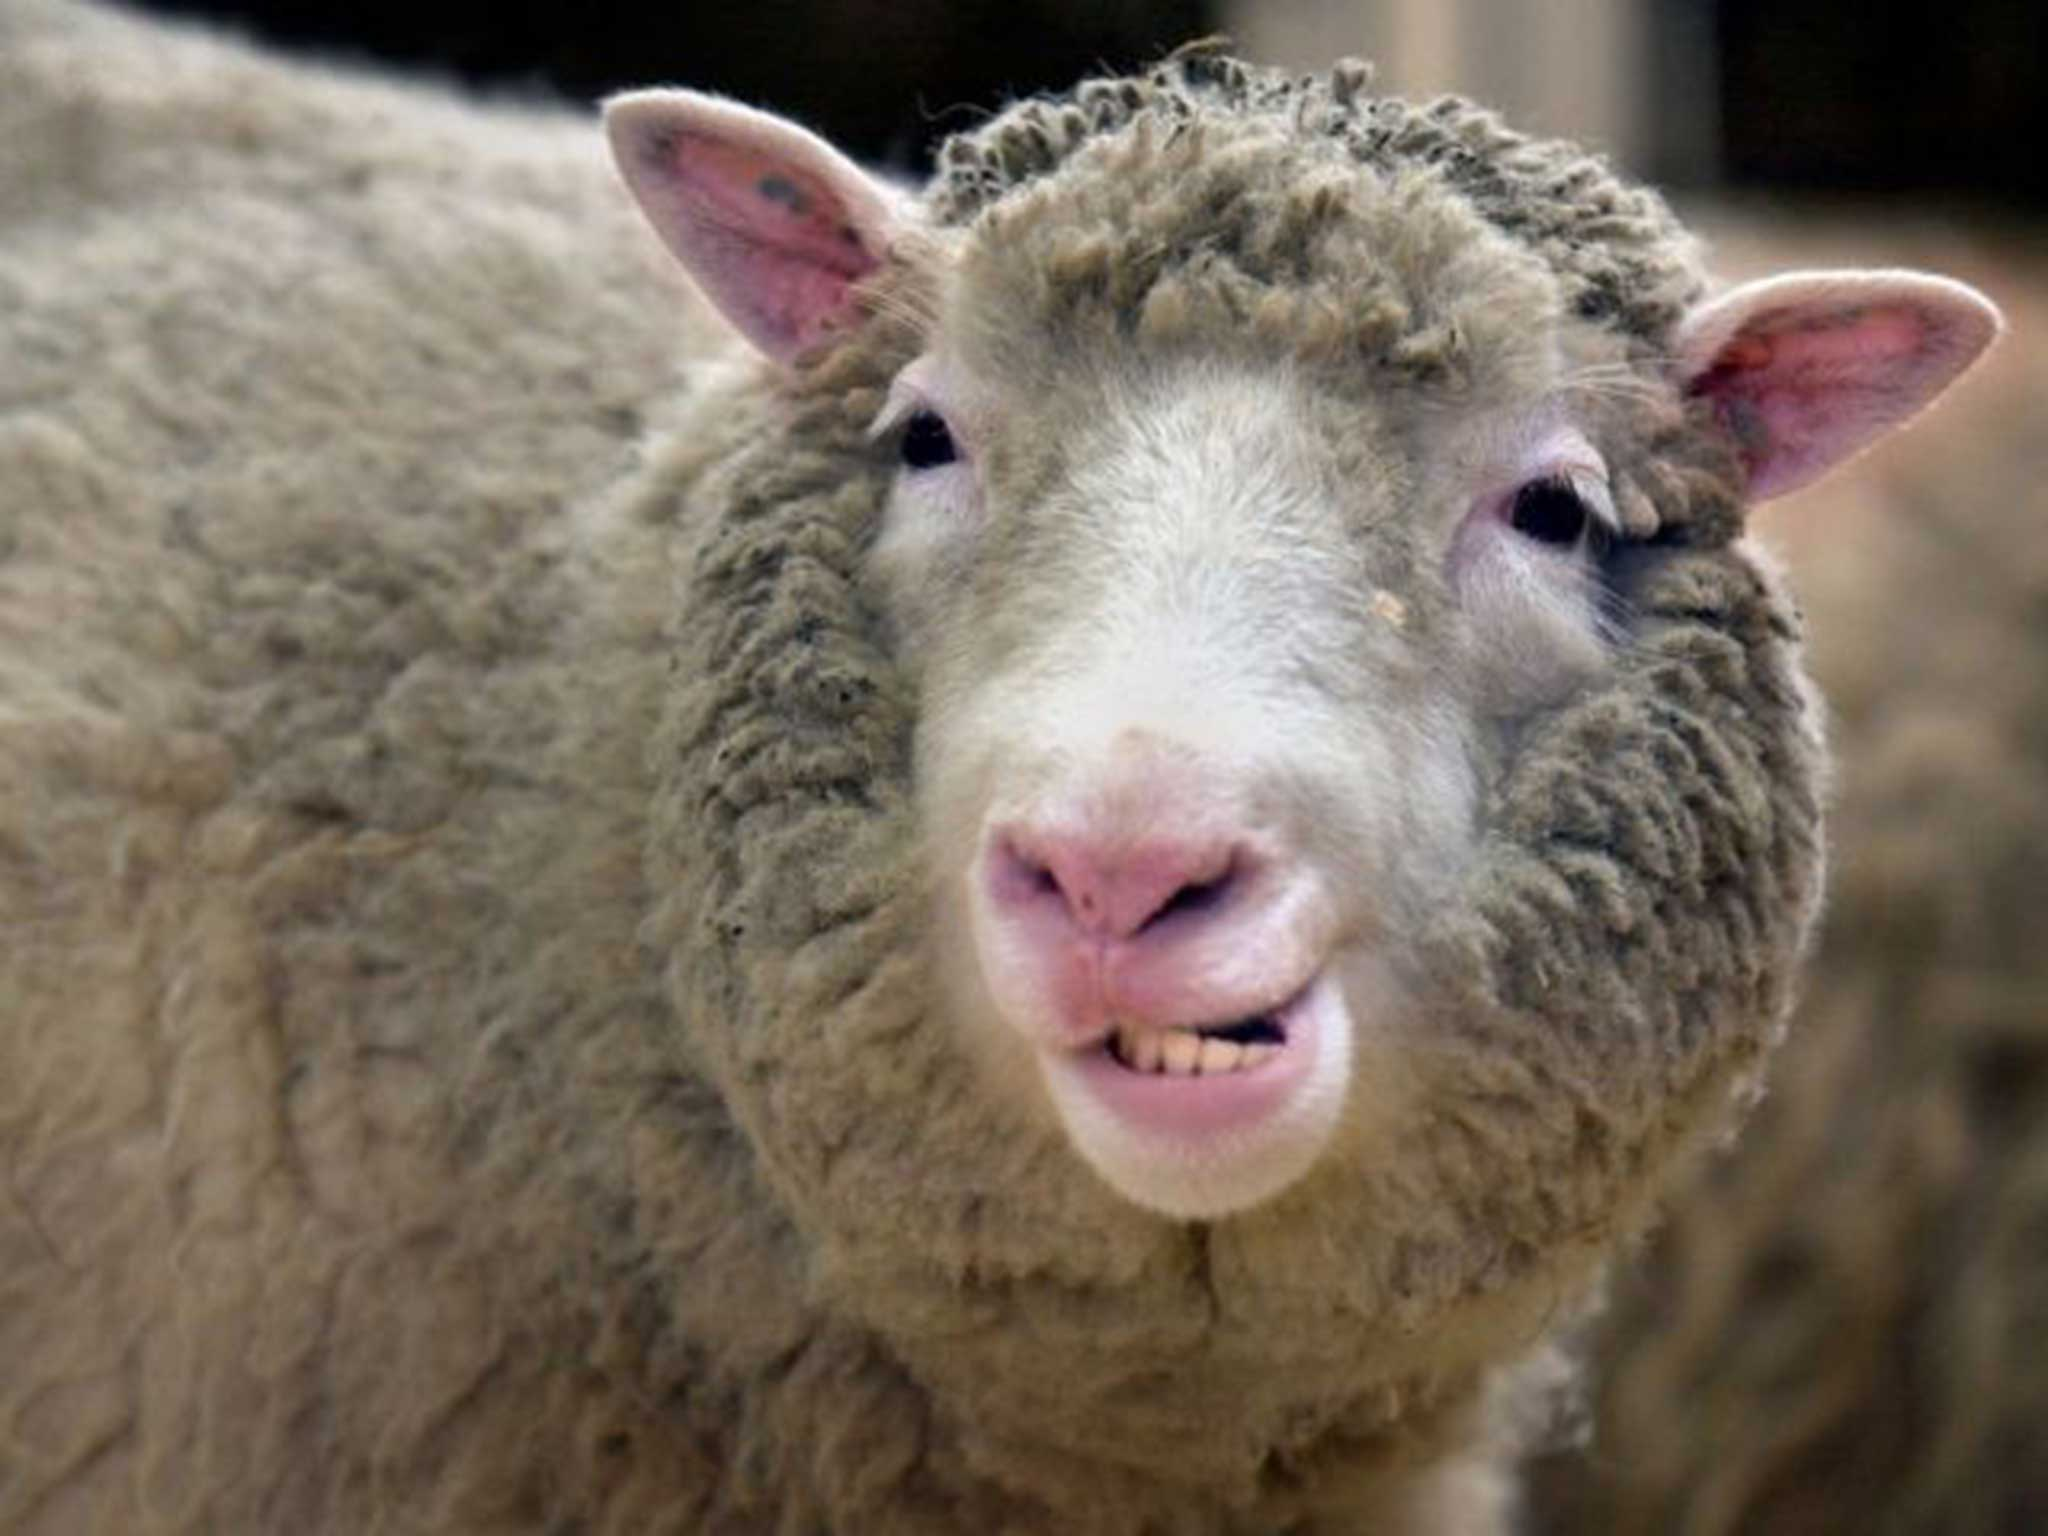 Epigenetics Around the Web: Dolly the sheep and aging